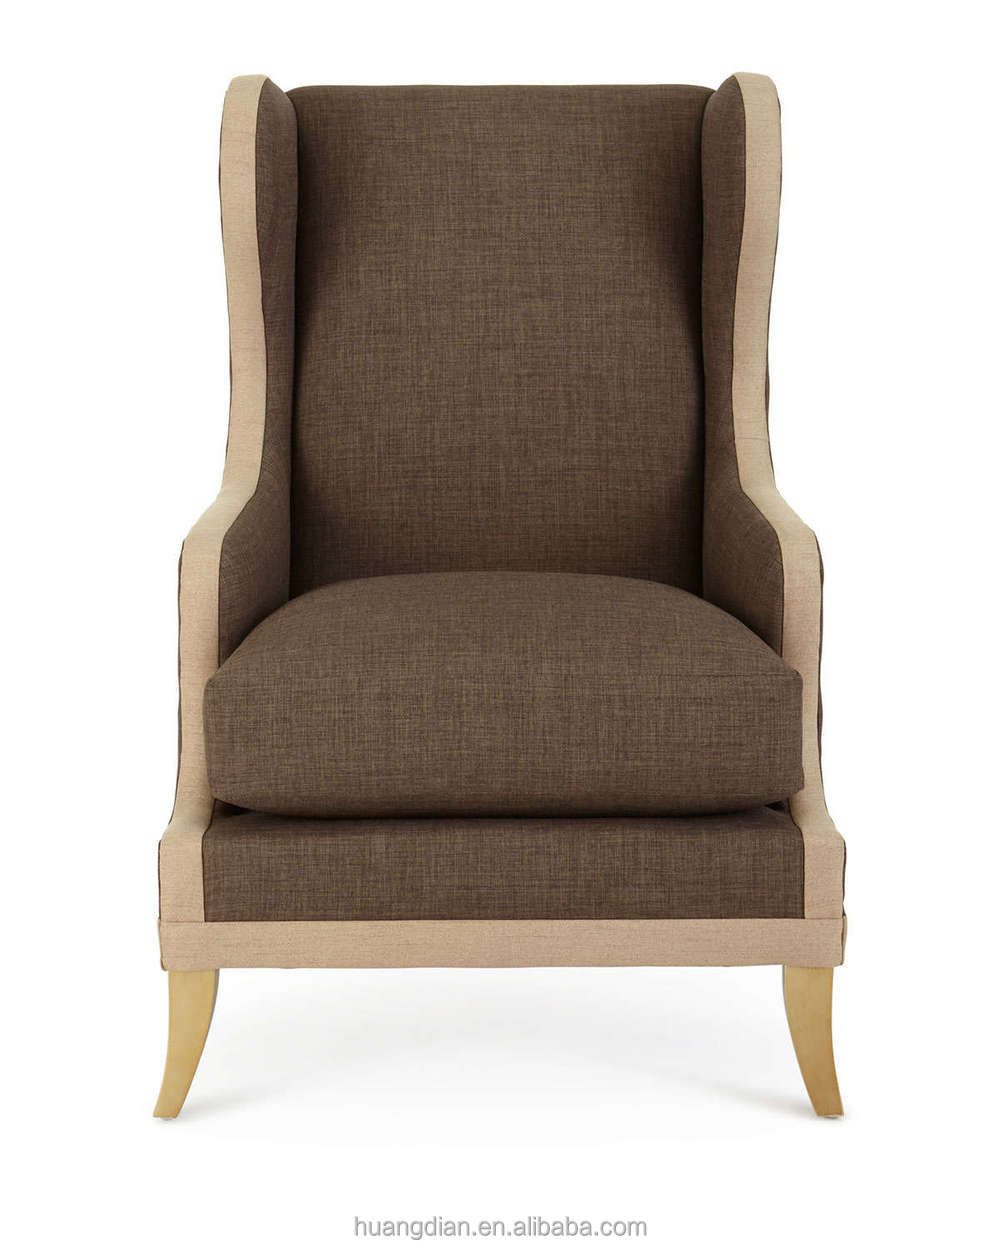 High Back Braunn Wing Chair Sofa Seat Hotel Room Furniture Bed Room Set Buy High Back Braunn Wing Chair Sofa Seat Hotel Room Furniture Single Sofa